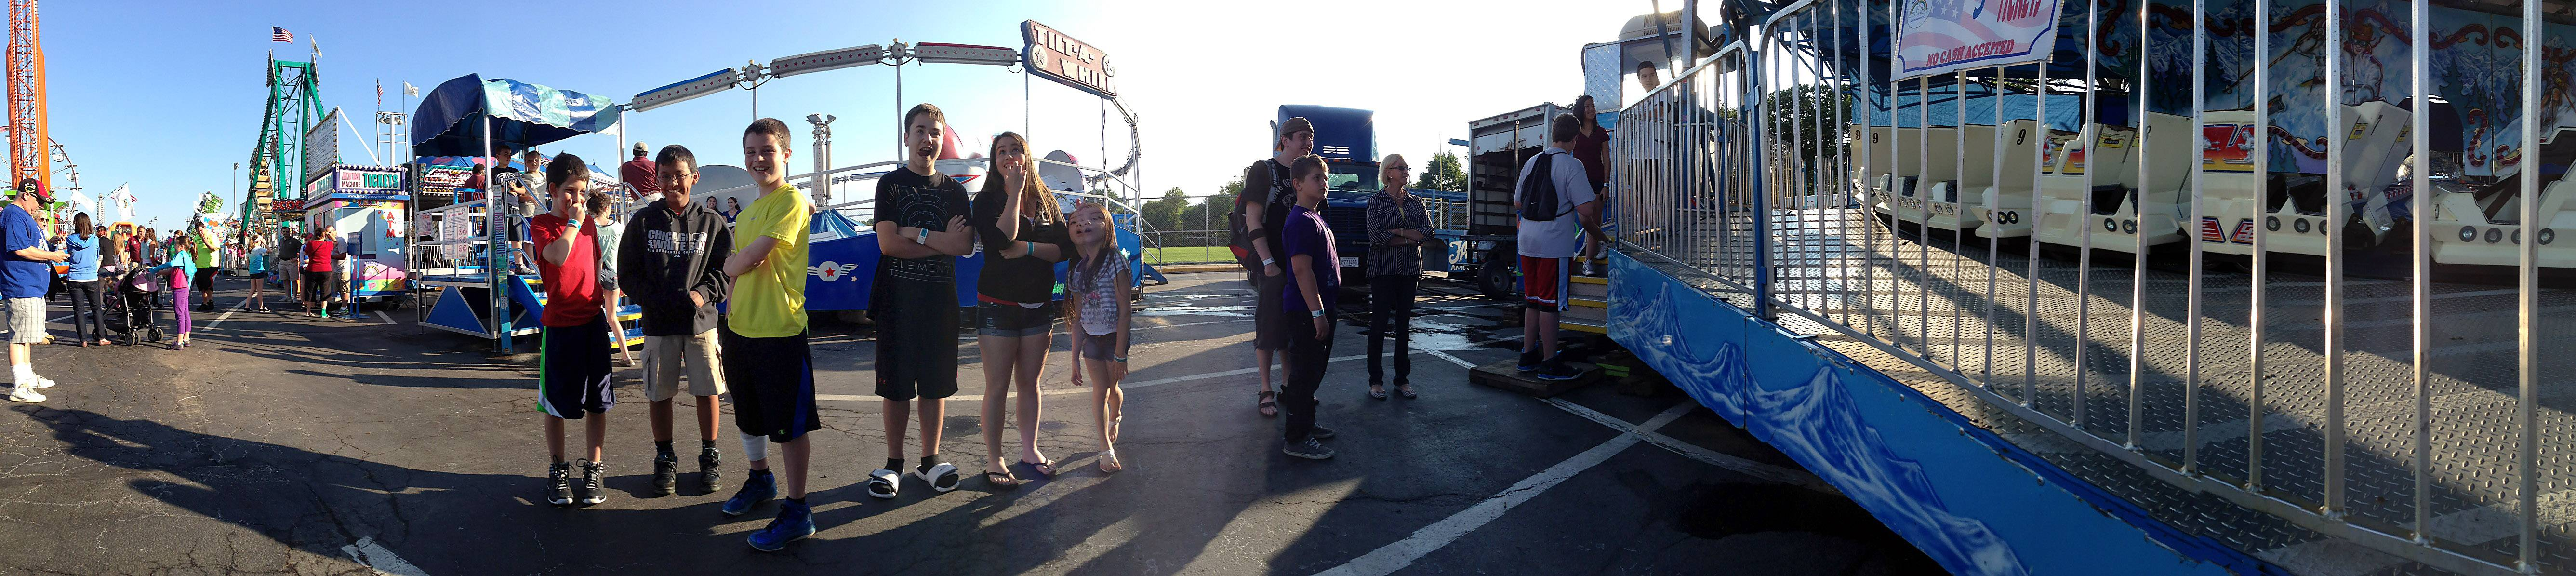 Children wait in line for the thrill on riding the Matterhorn at Elk Grove Village's 2013 RotaryFest.